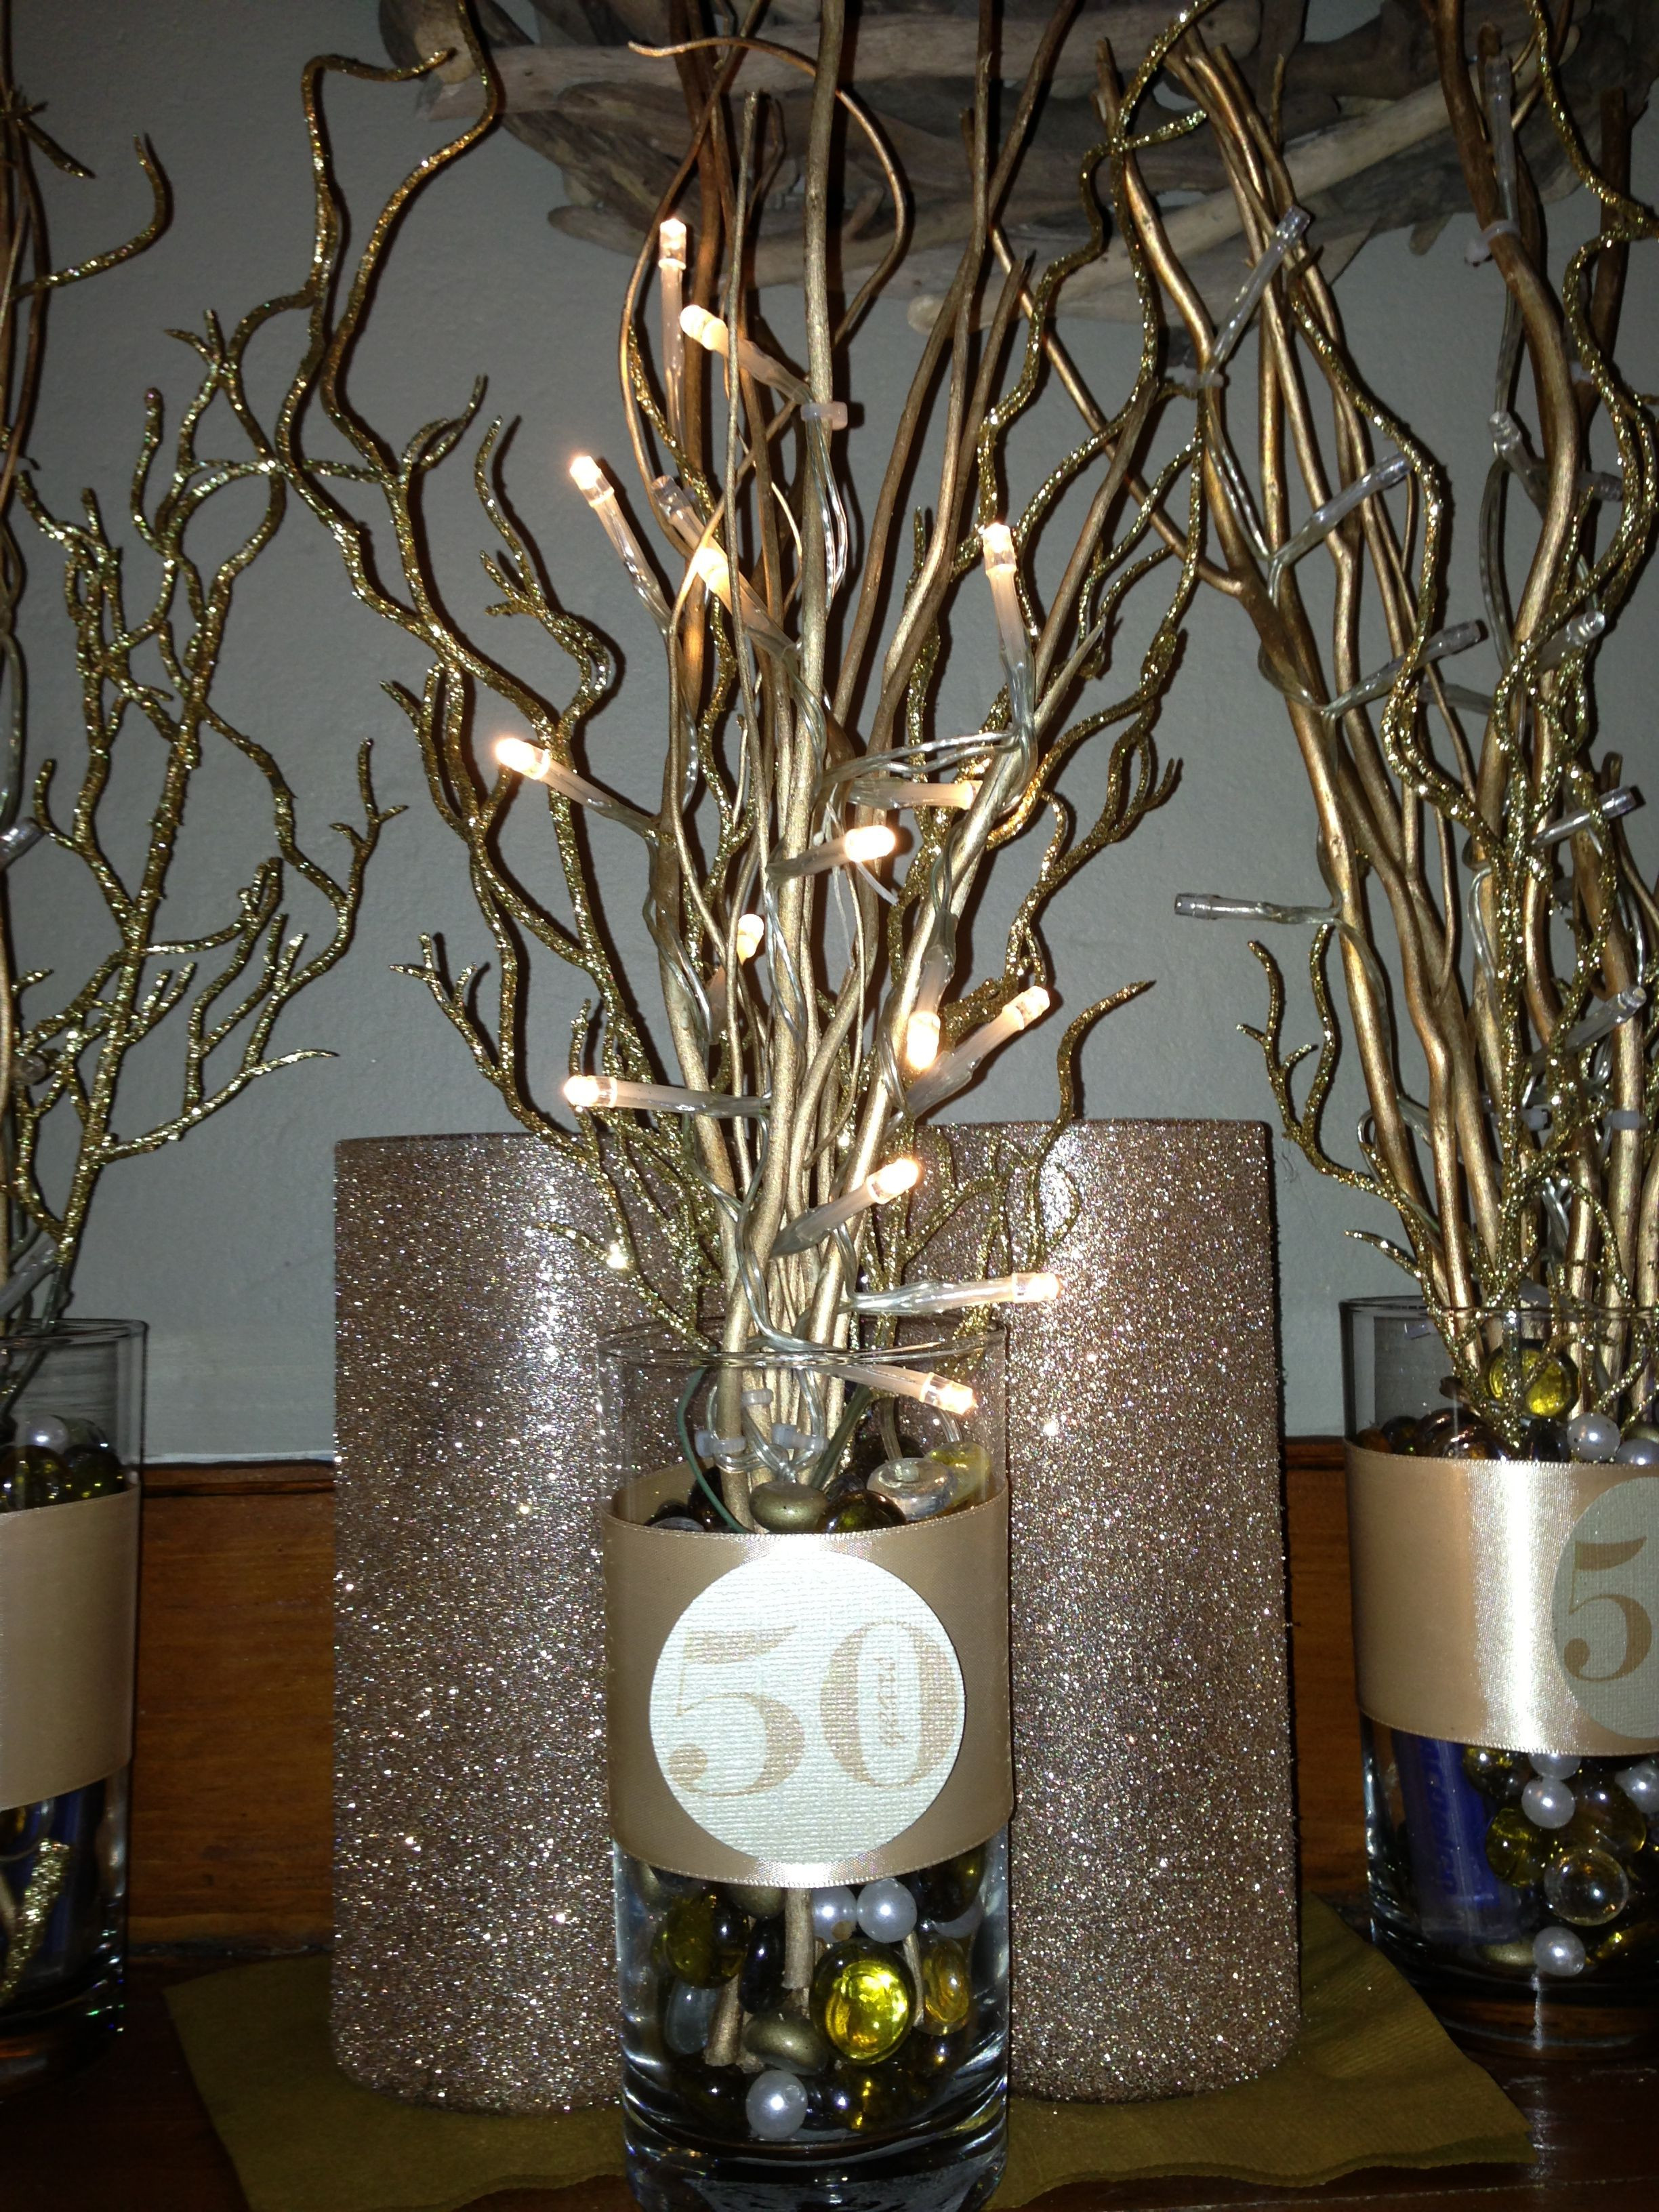 Best ideas about 50th Birthday Table Decorations . Save or Pin 50 th anniversary centerpiece Now.